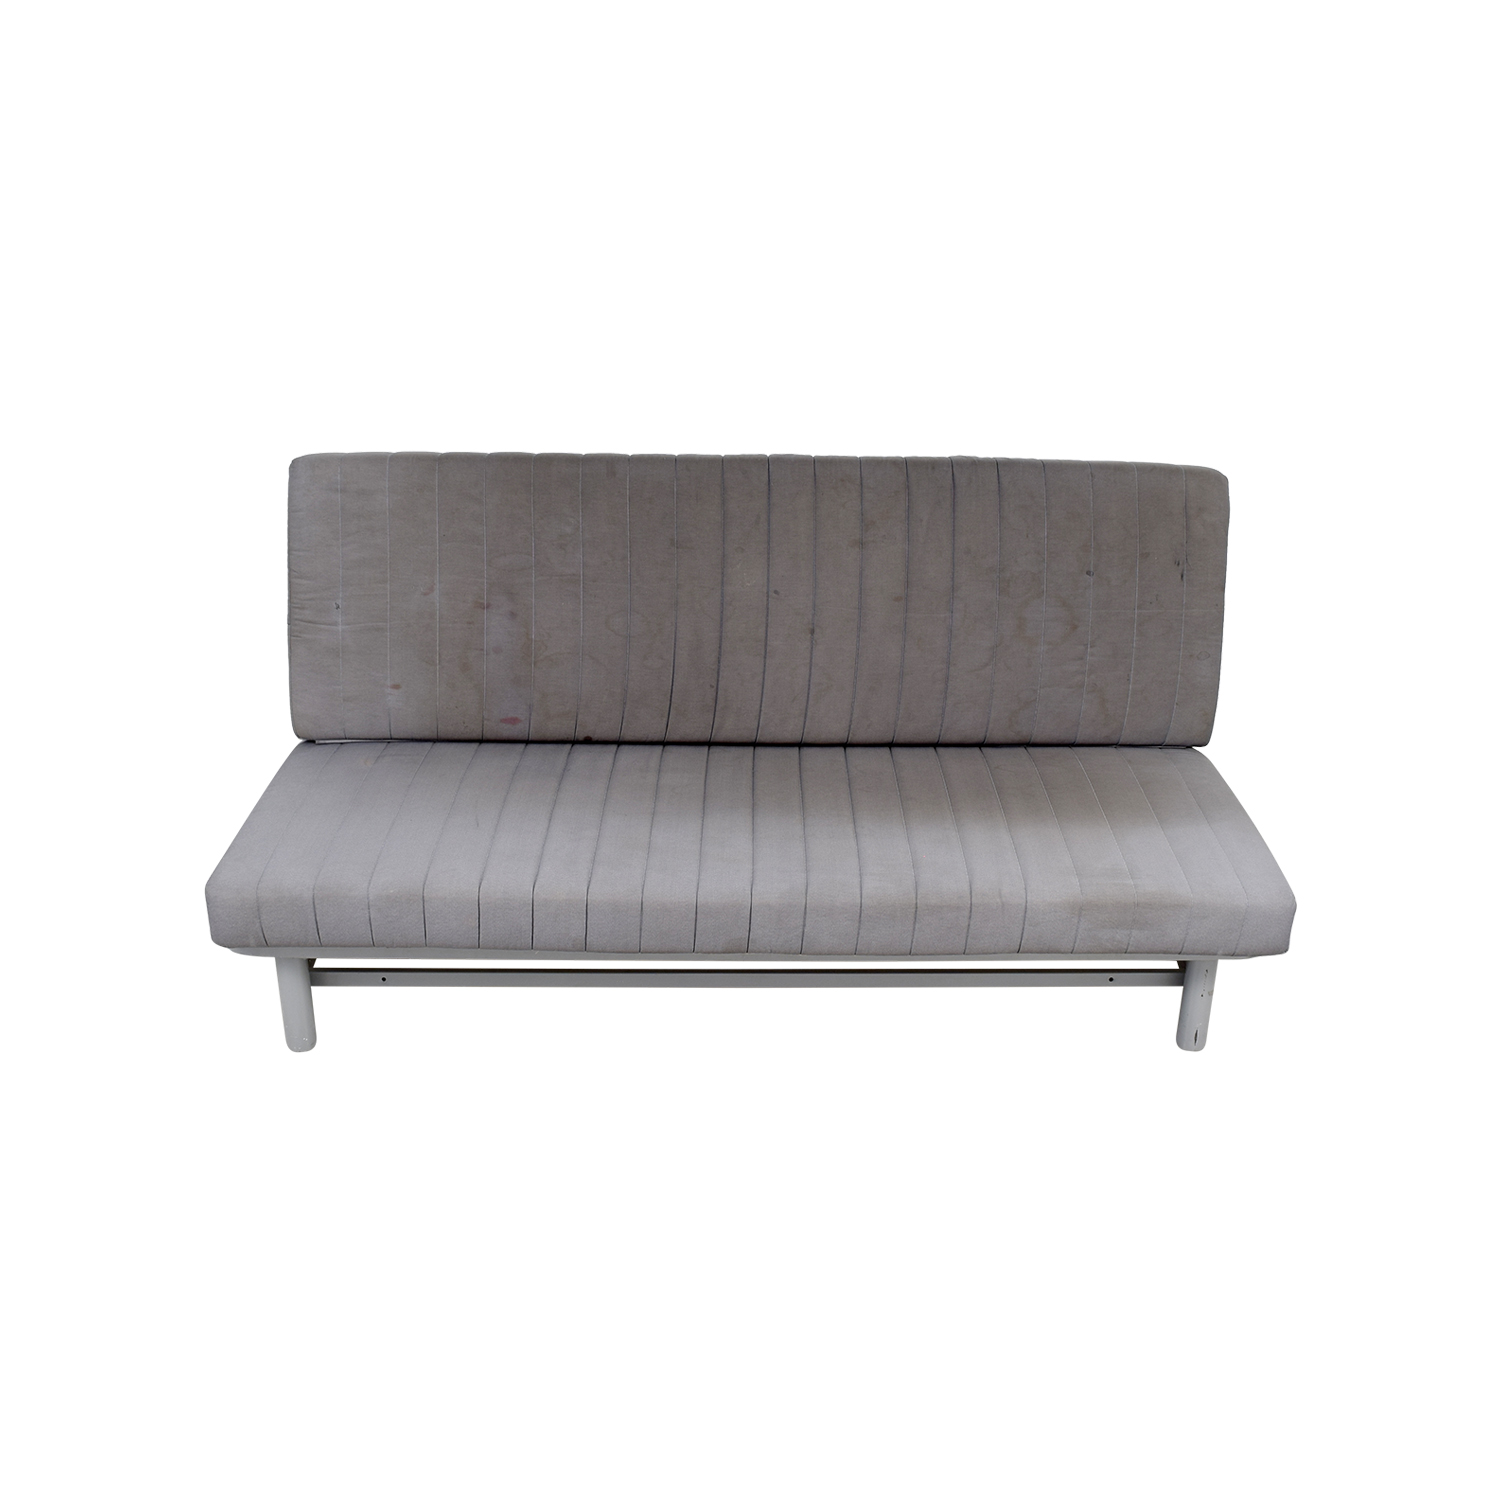 IKEA IKEA Grey Sofa Bed dimensions